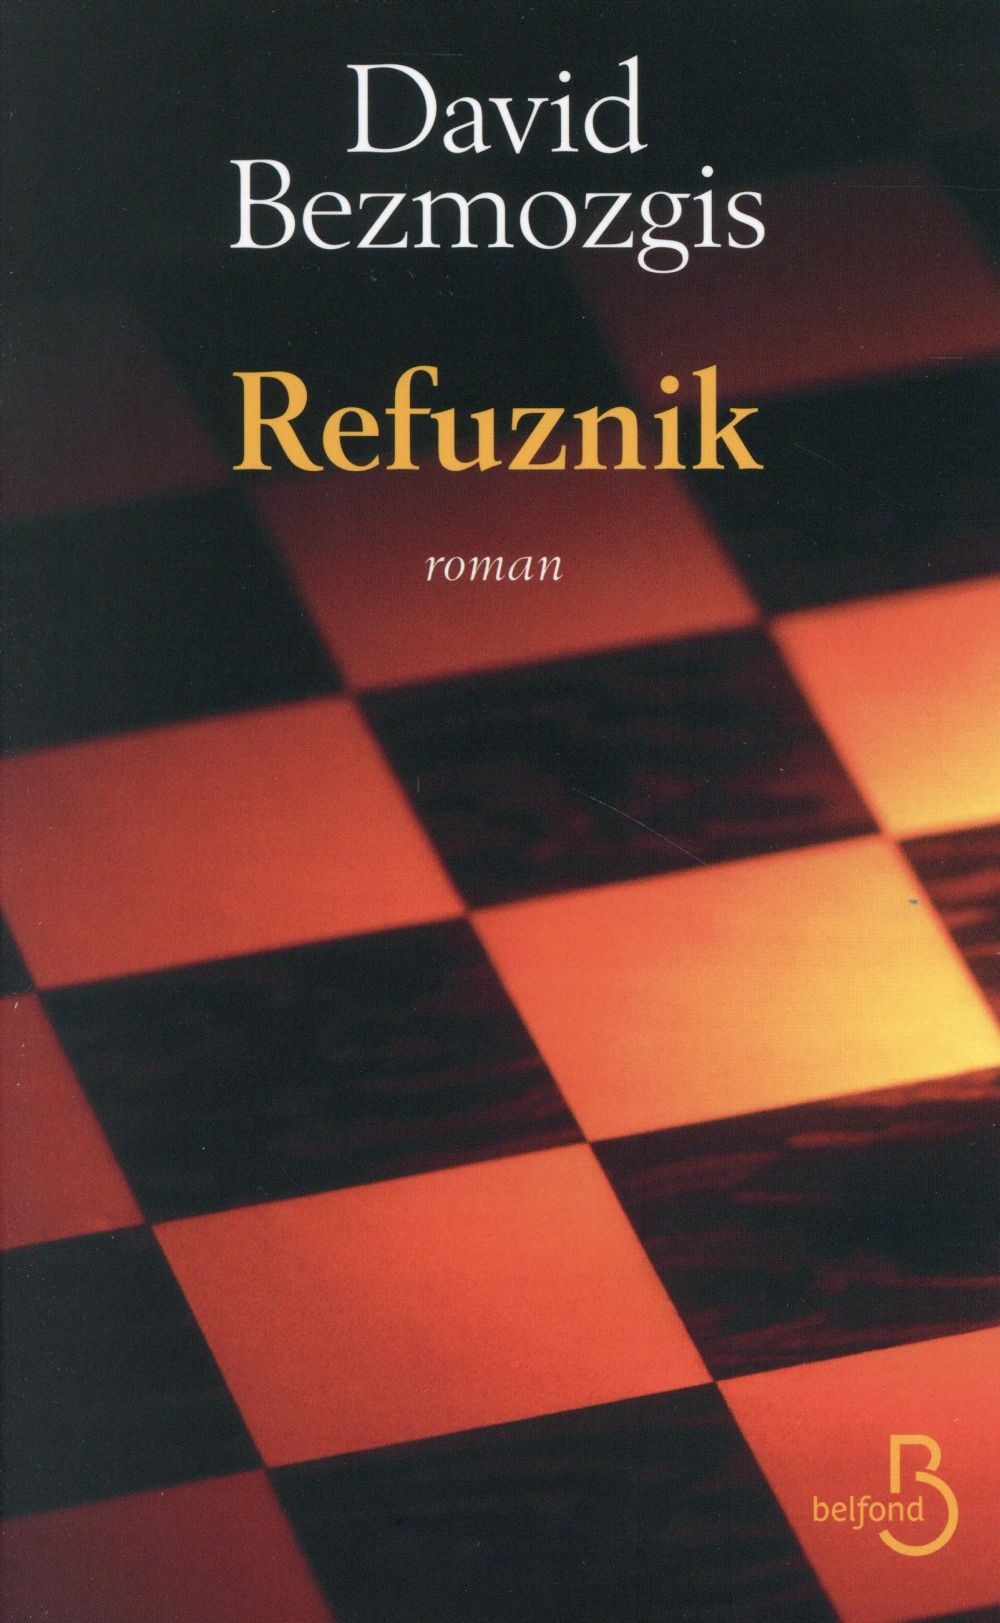 """Refuznik"" de David Bezmozgis - la chronique #18 du Club des Explorateurs"